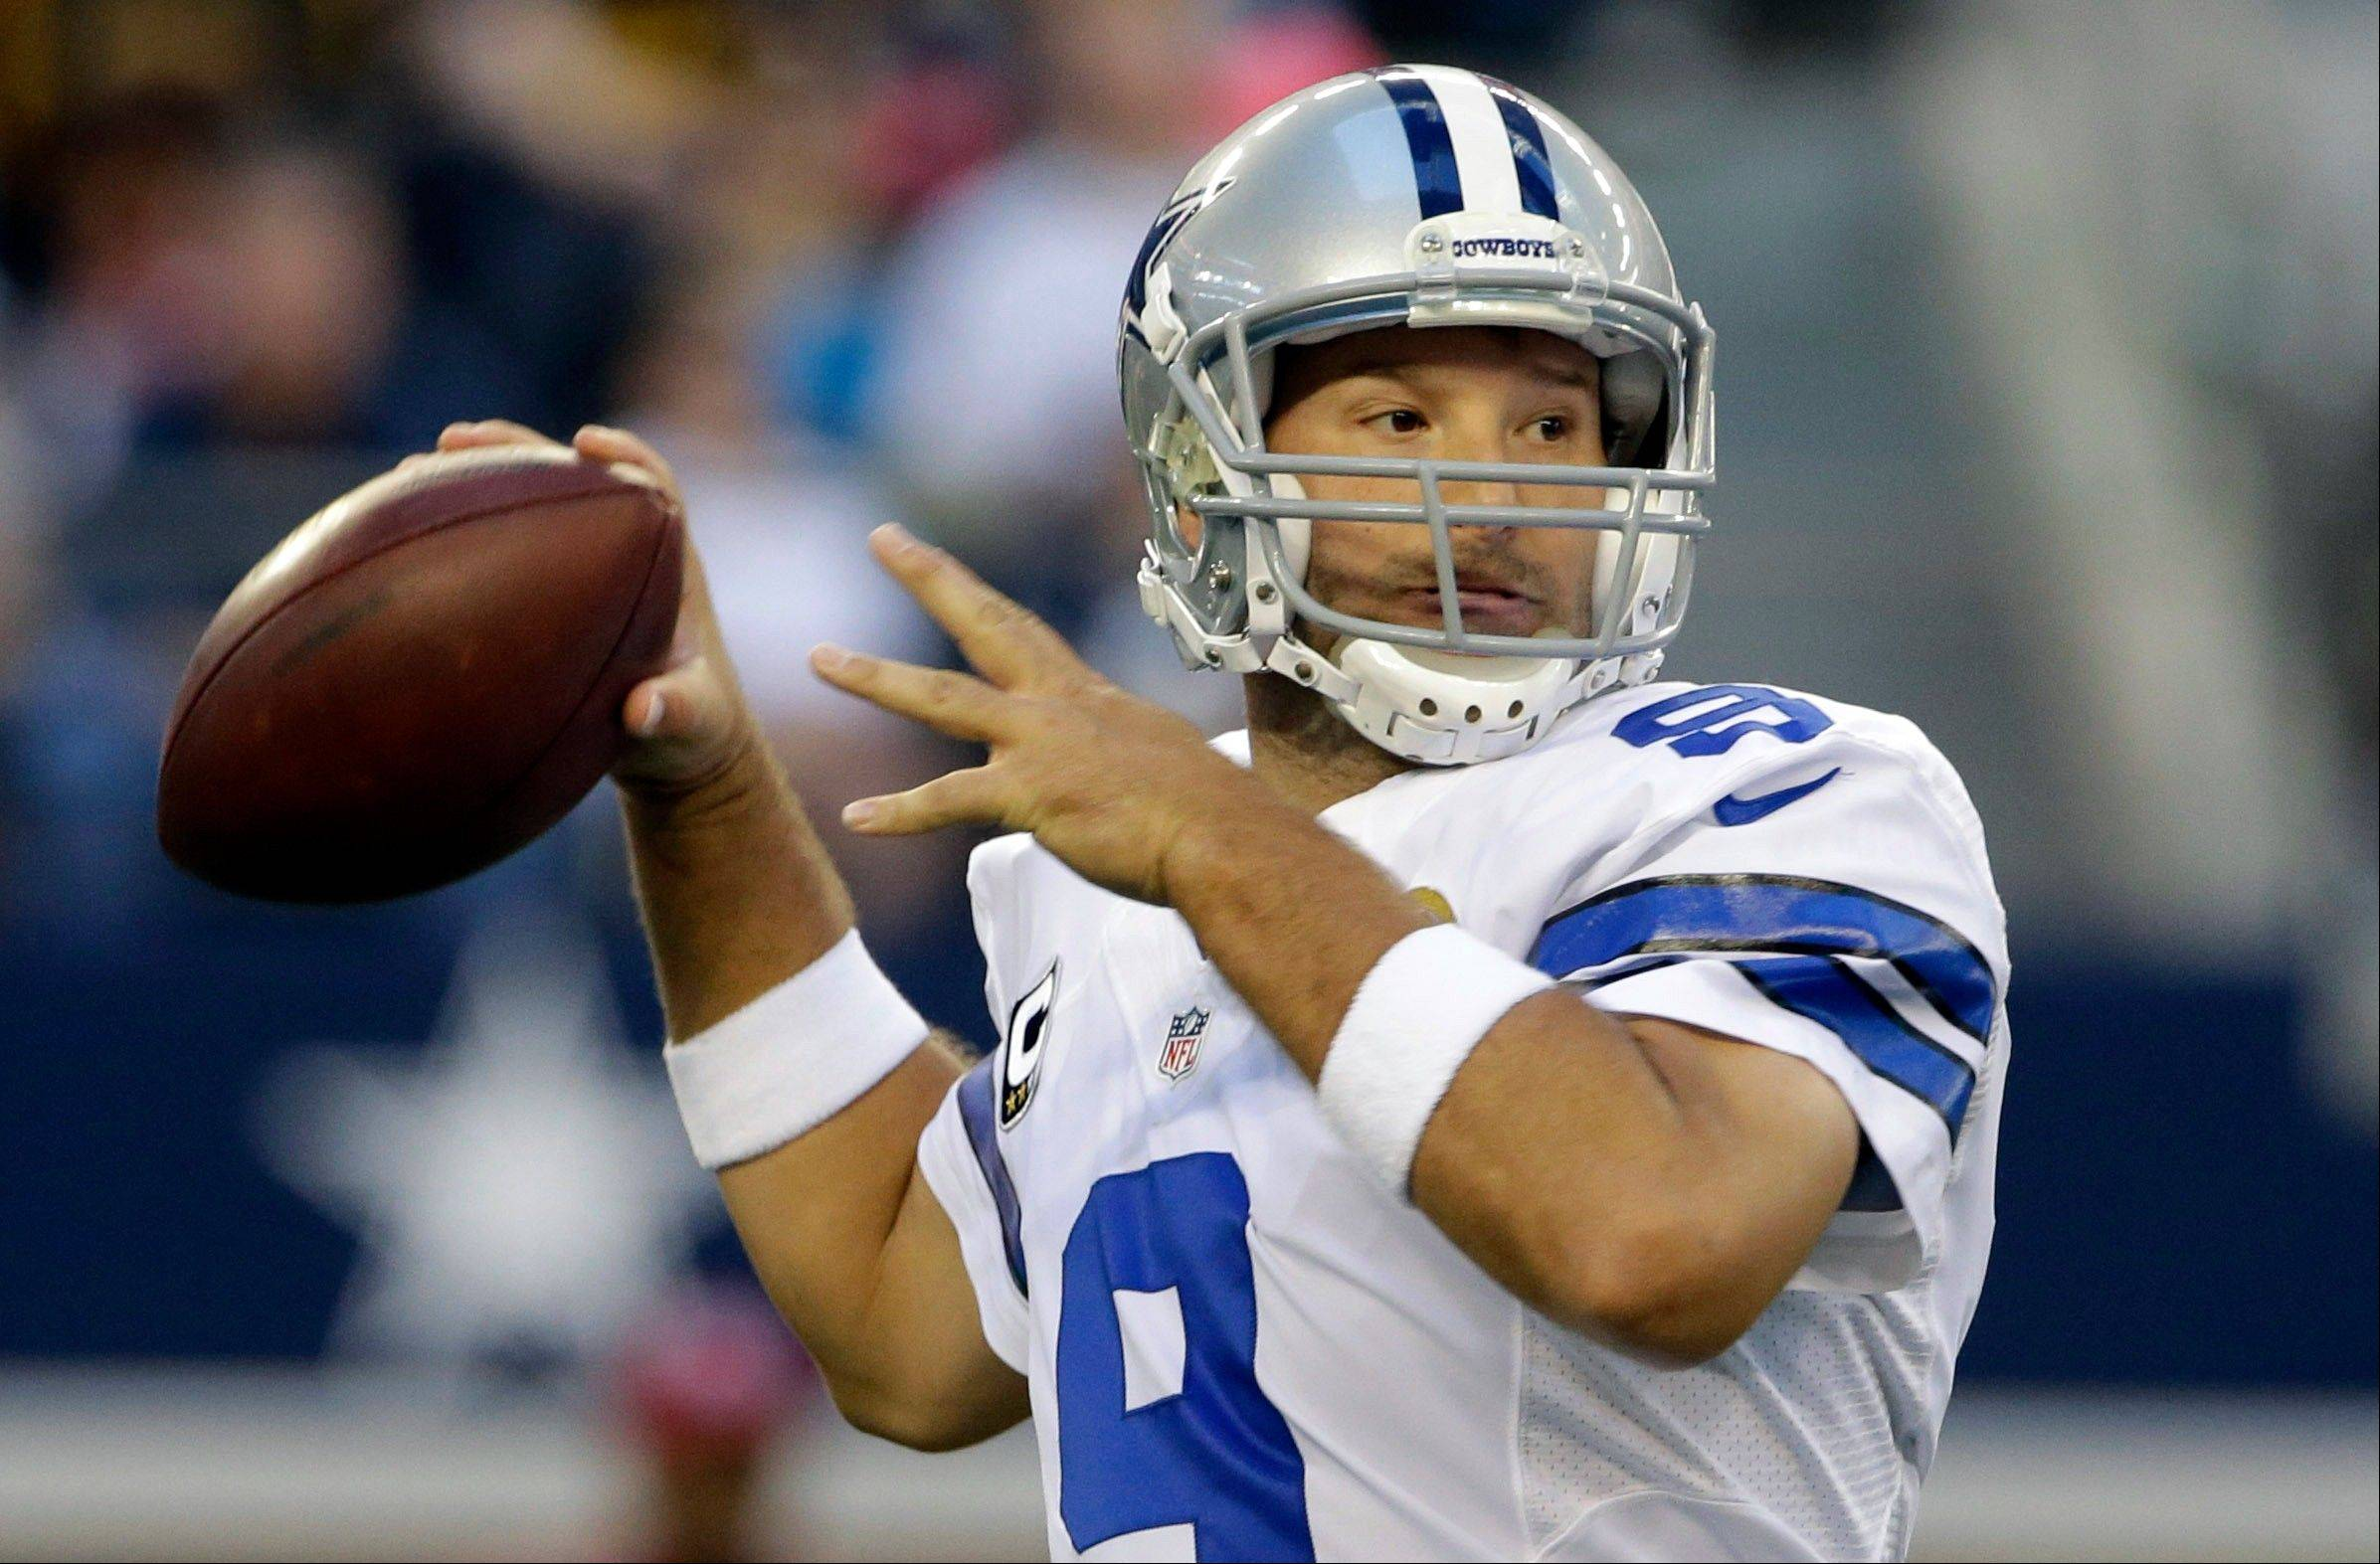 John Dietz says Tony Romo is a great play this week as the Cowboys take on the Saints.